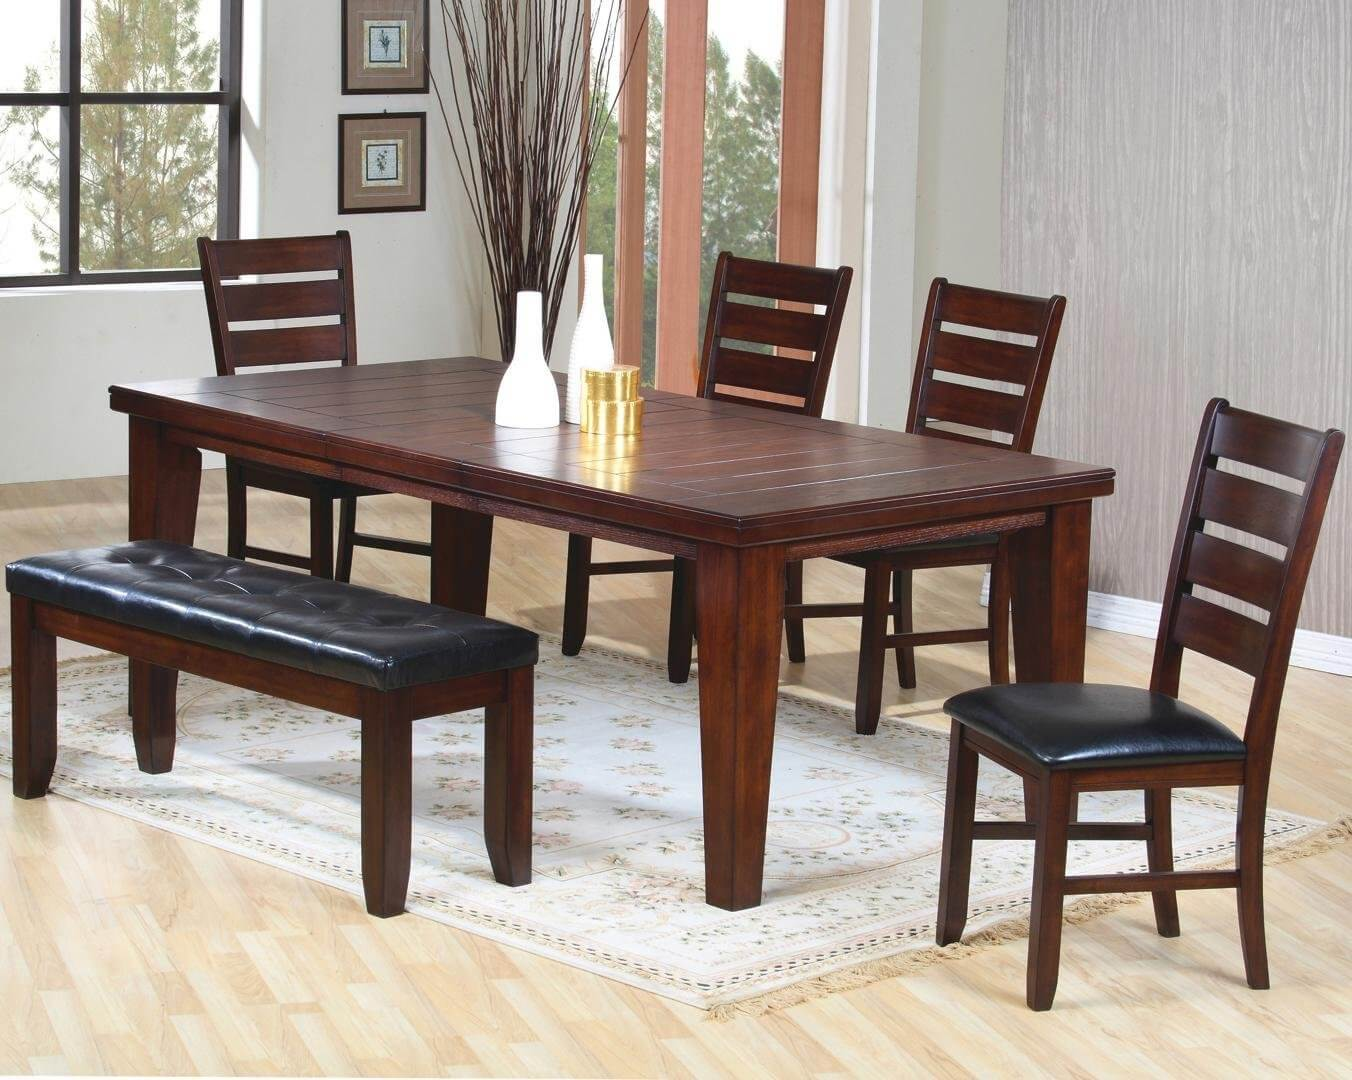 Bench Seat For Dining Room Table ~ Congresos-Pontevedra.com